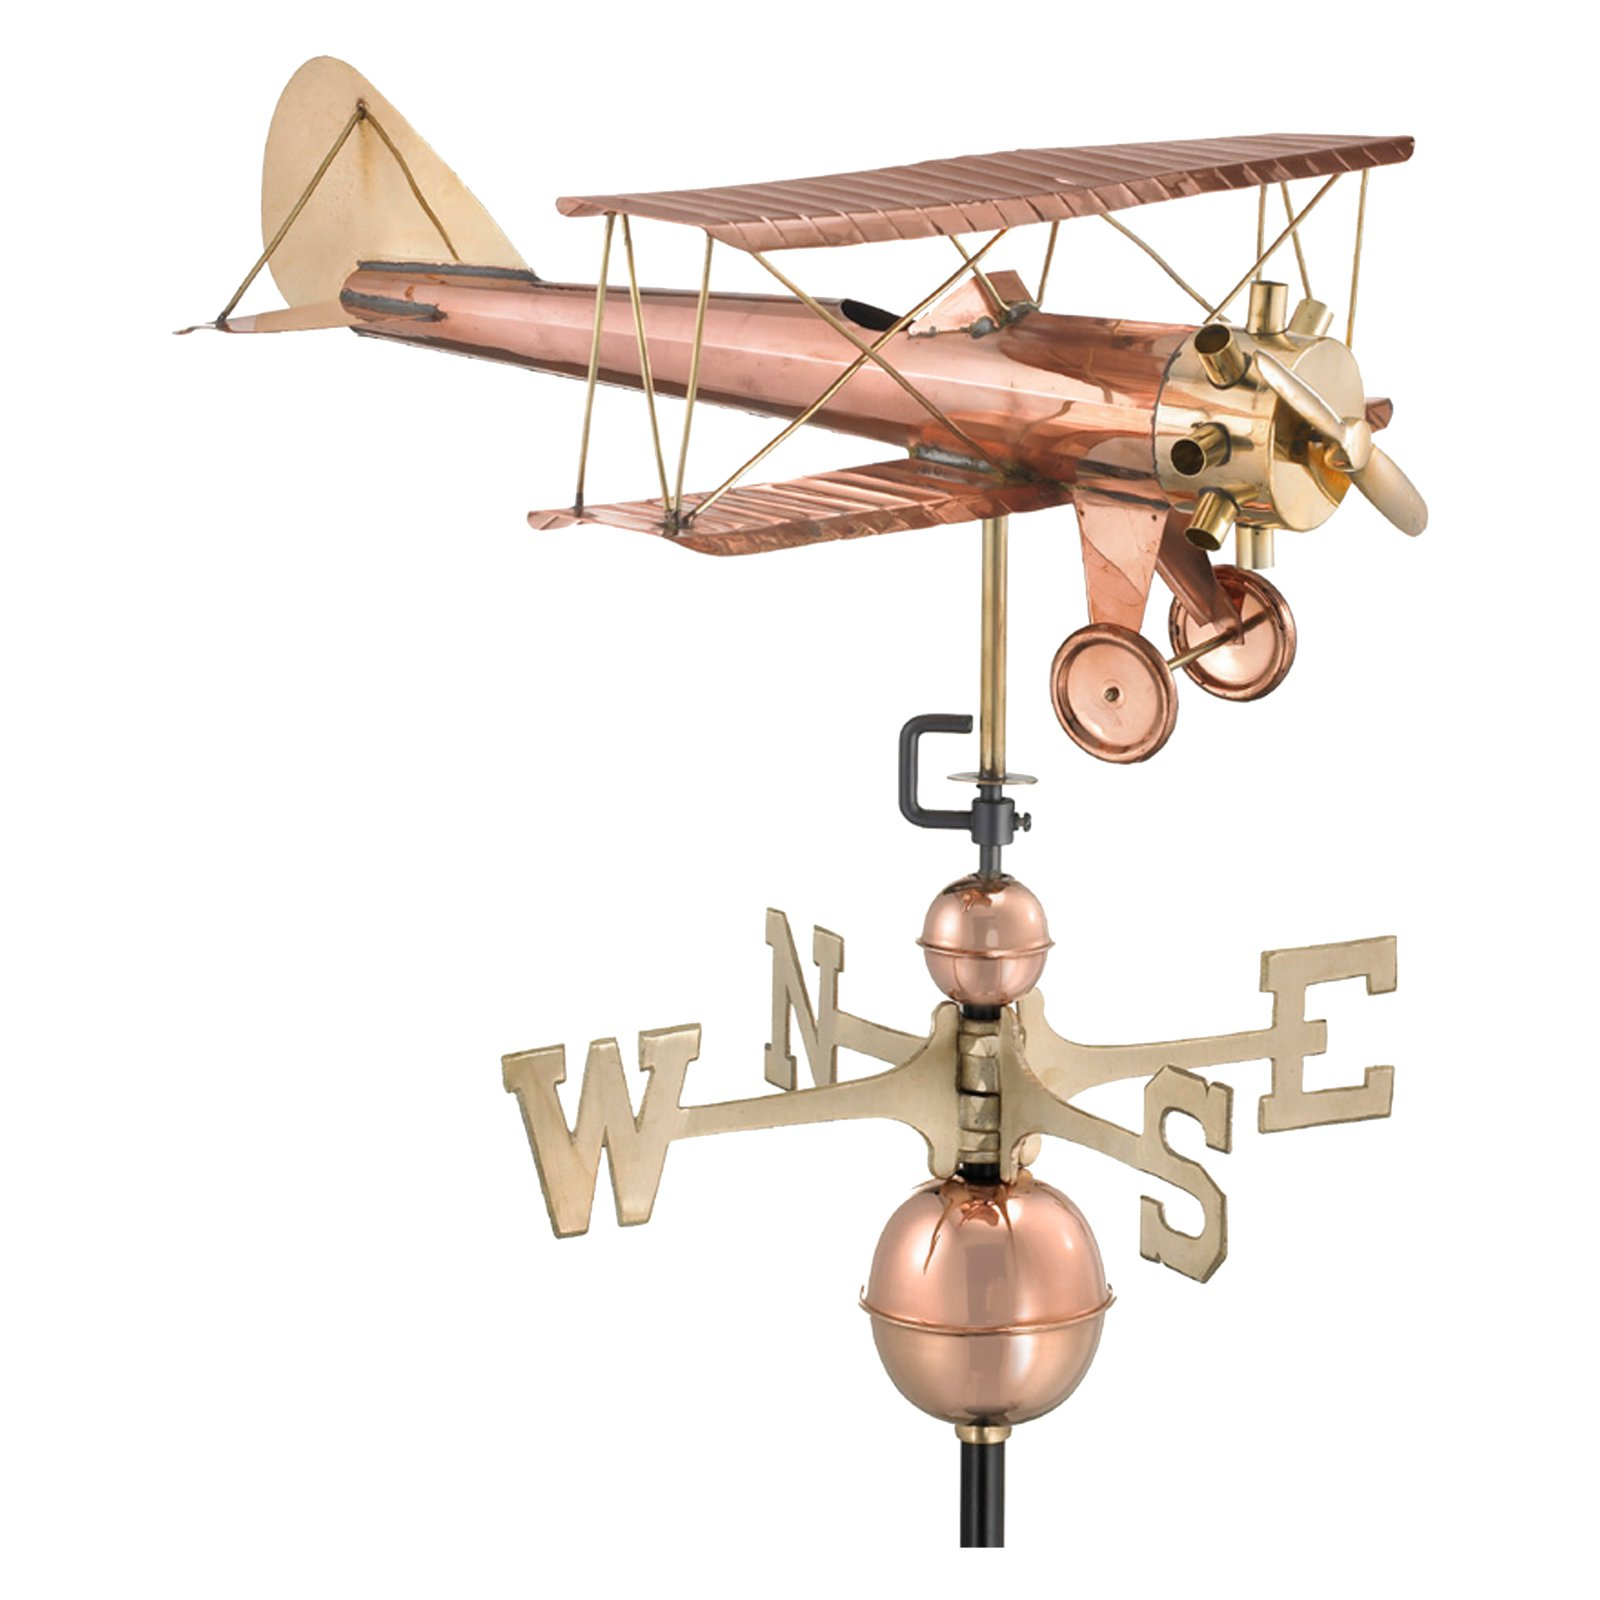 Good Directions Biplane Weathervane, Polished Copper by Good Directions